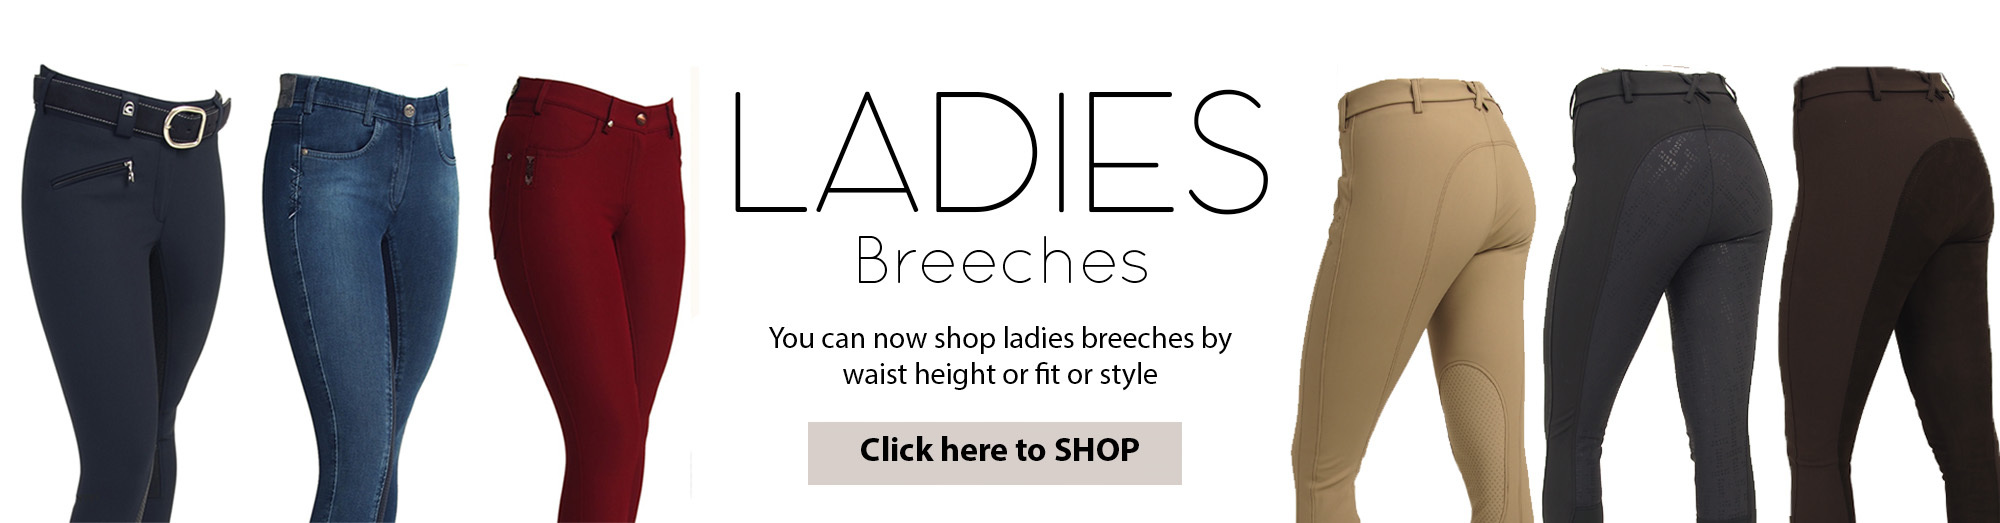 ladies_breeches_2019_home_banner